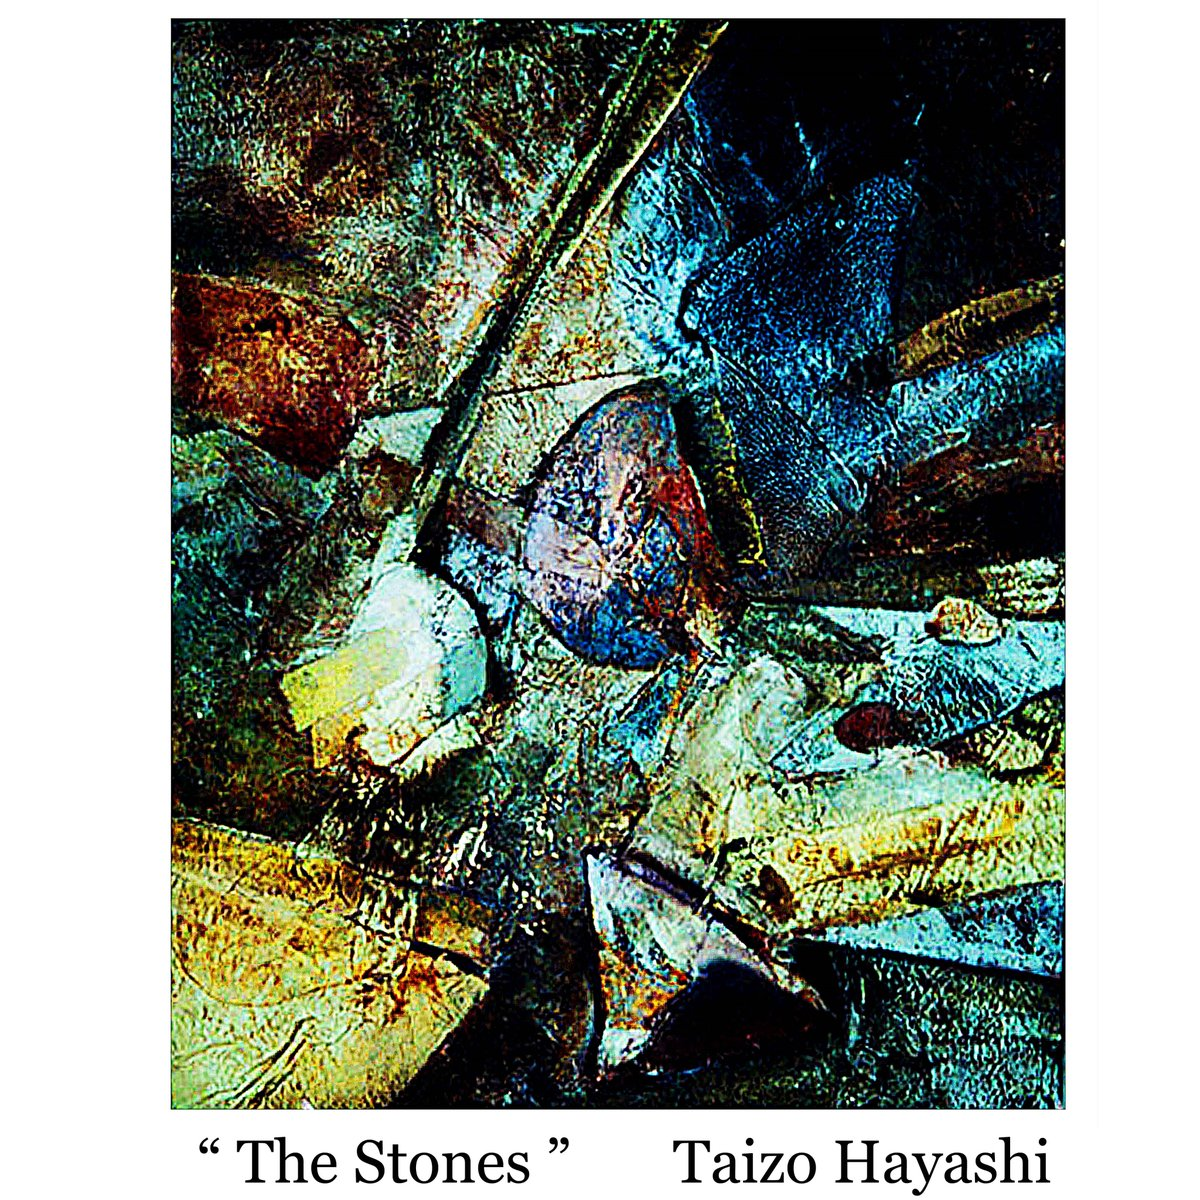 &quot; The Stones &quot; Mixtmedia on canvas  Paintings by Taizo Hayashi ; japan #abstractpainting   #canvas #ContemporaryArt  #抽象画 #絵描きさんと繋がりたい #art<br>http://pic.twitter.com/htHpXl9VZv